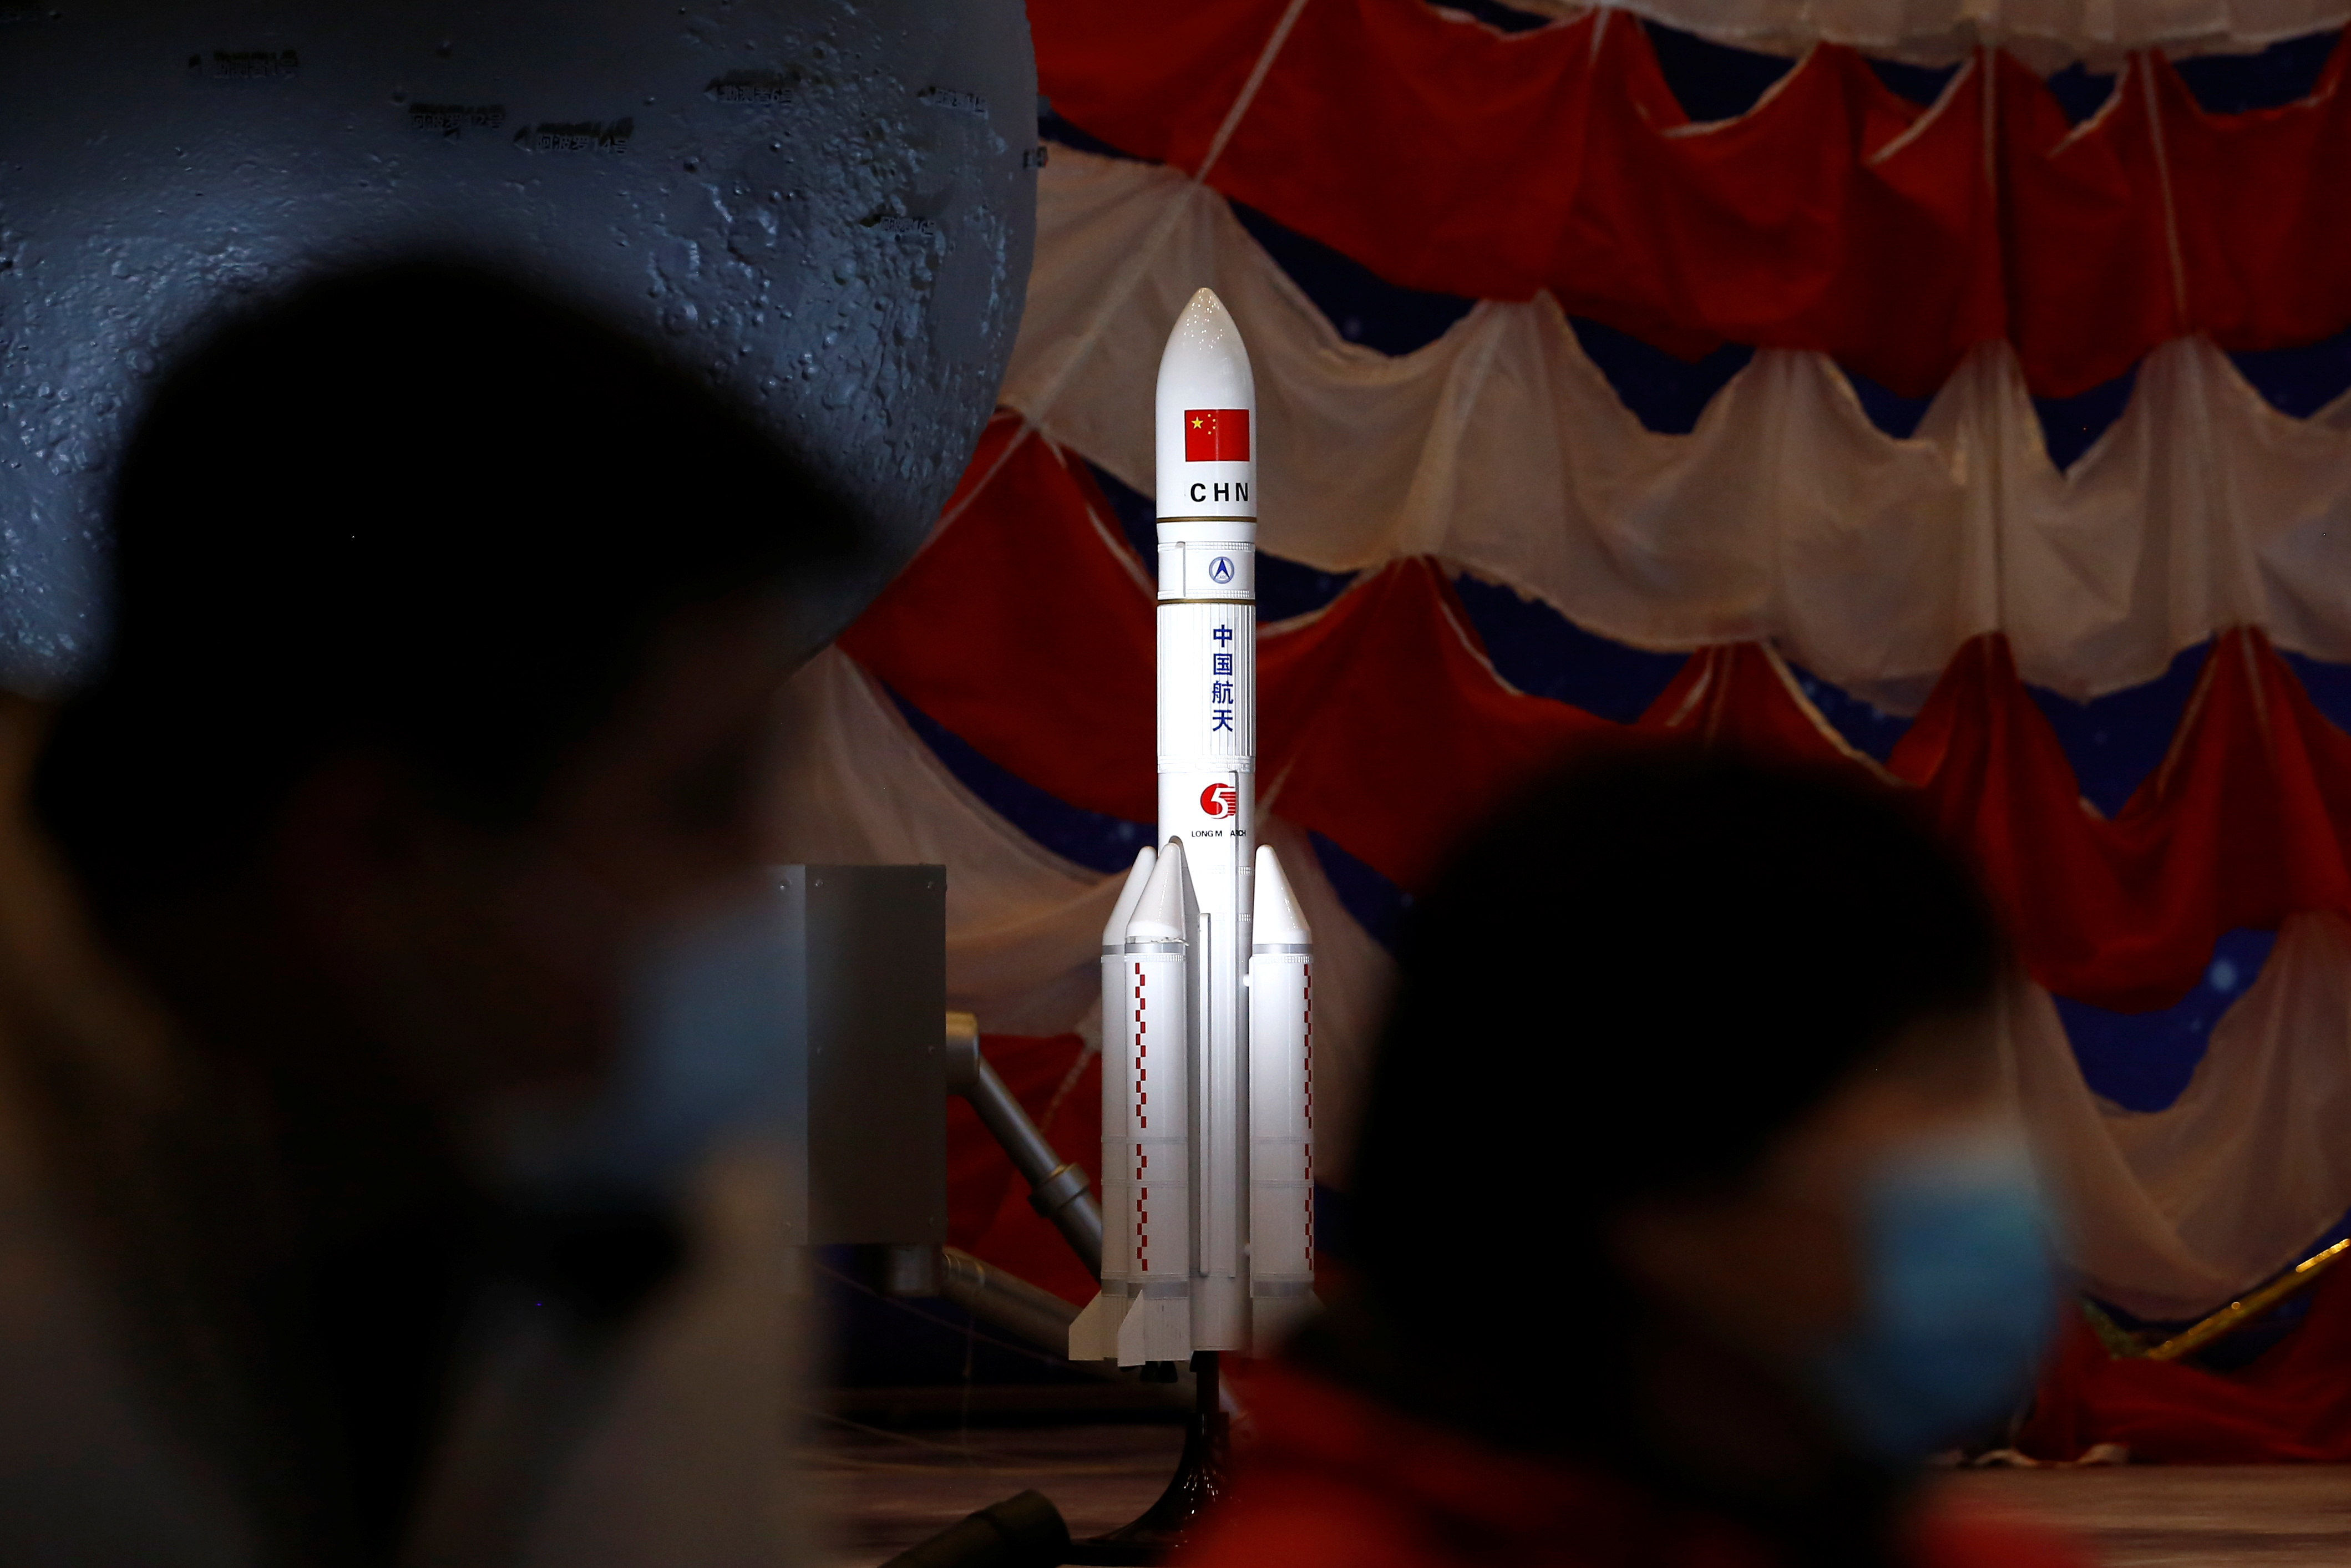 A model of the Long March-5 Y5 rocket from China's lunar exploration program Chang'e-5 Mission is displayed at an exhibition inside the National Museum in Beijing, China March 3, 2021. REUTERS/Tingshu Wang